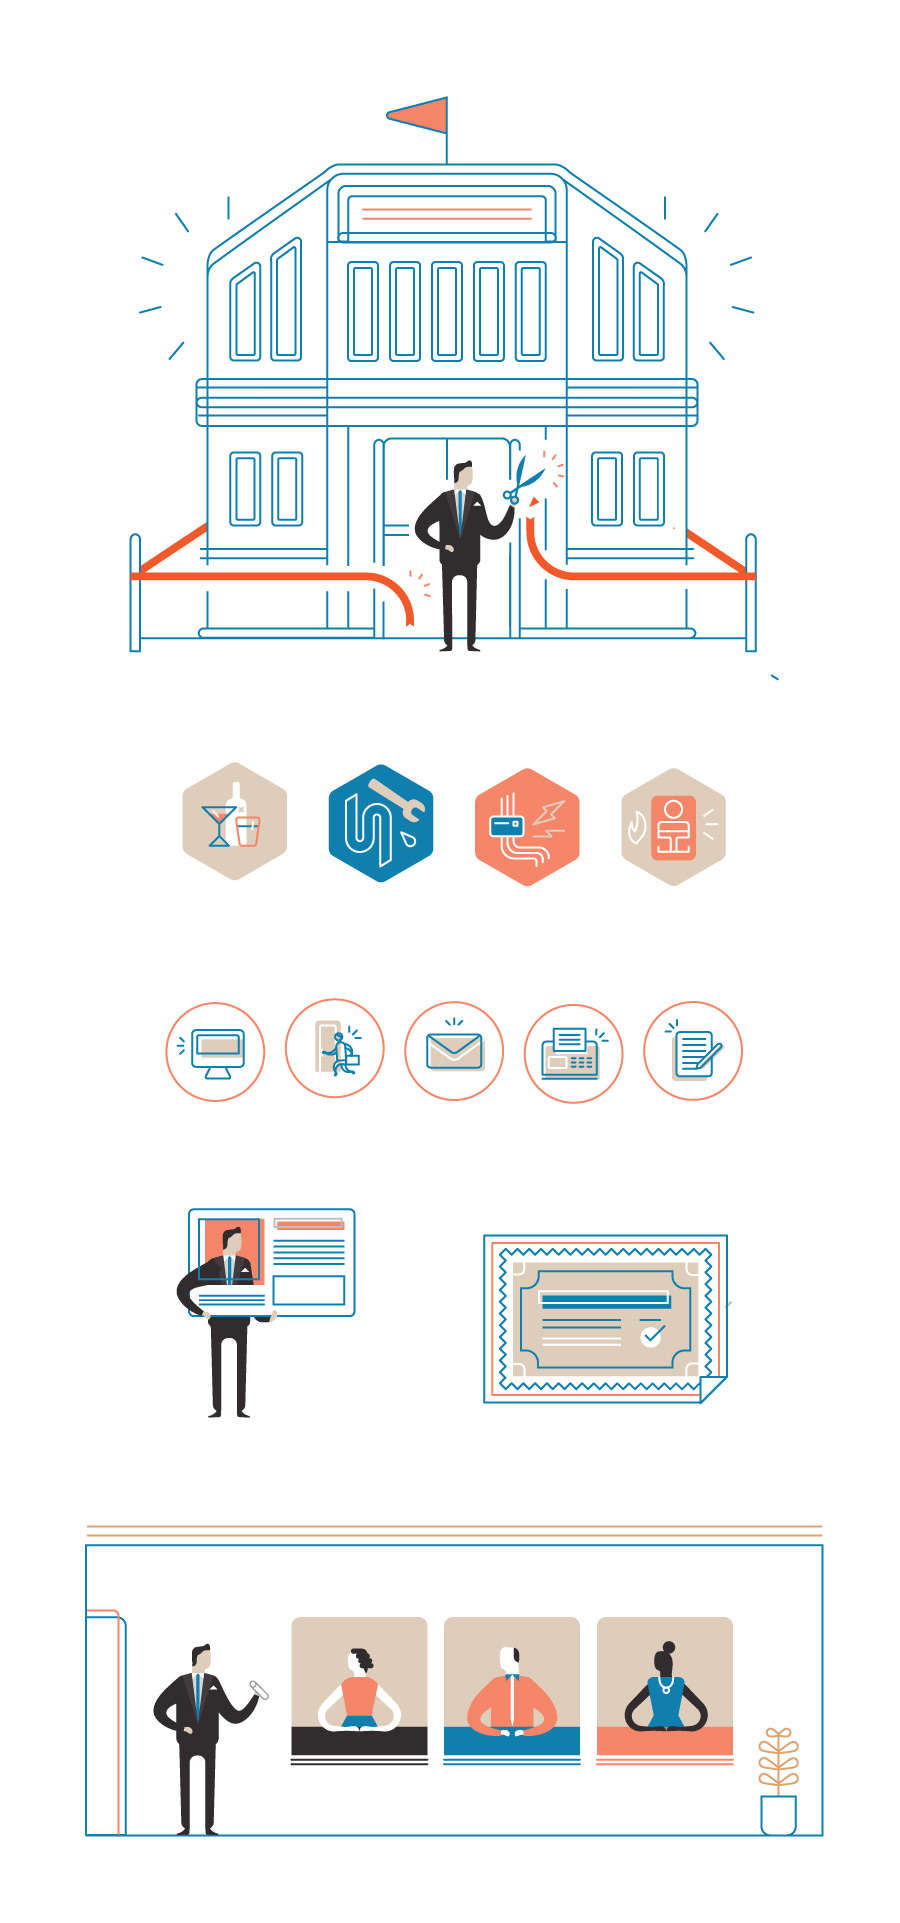 Business and Immigration: Illustrations and Icon Design  Client: Eighty2Degrees